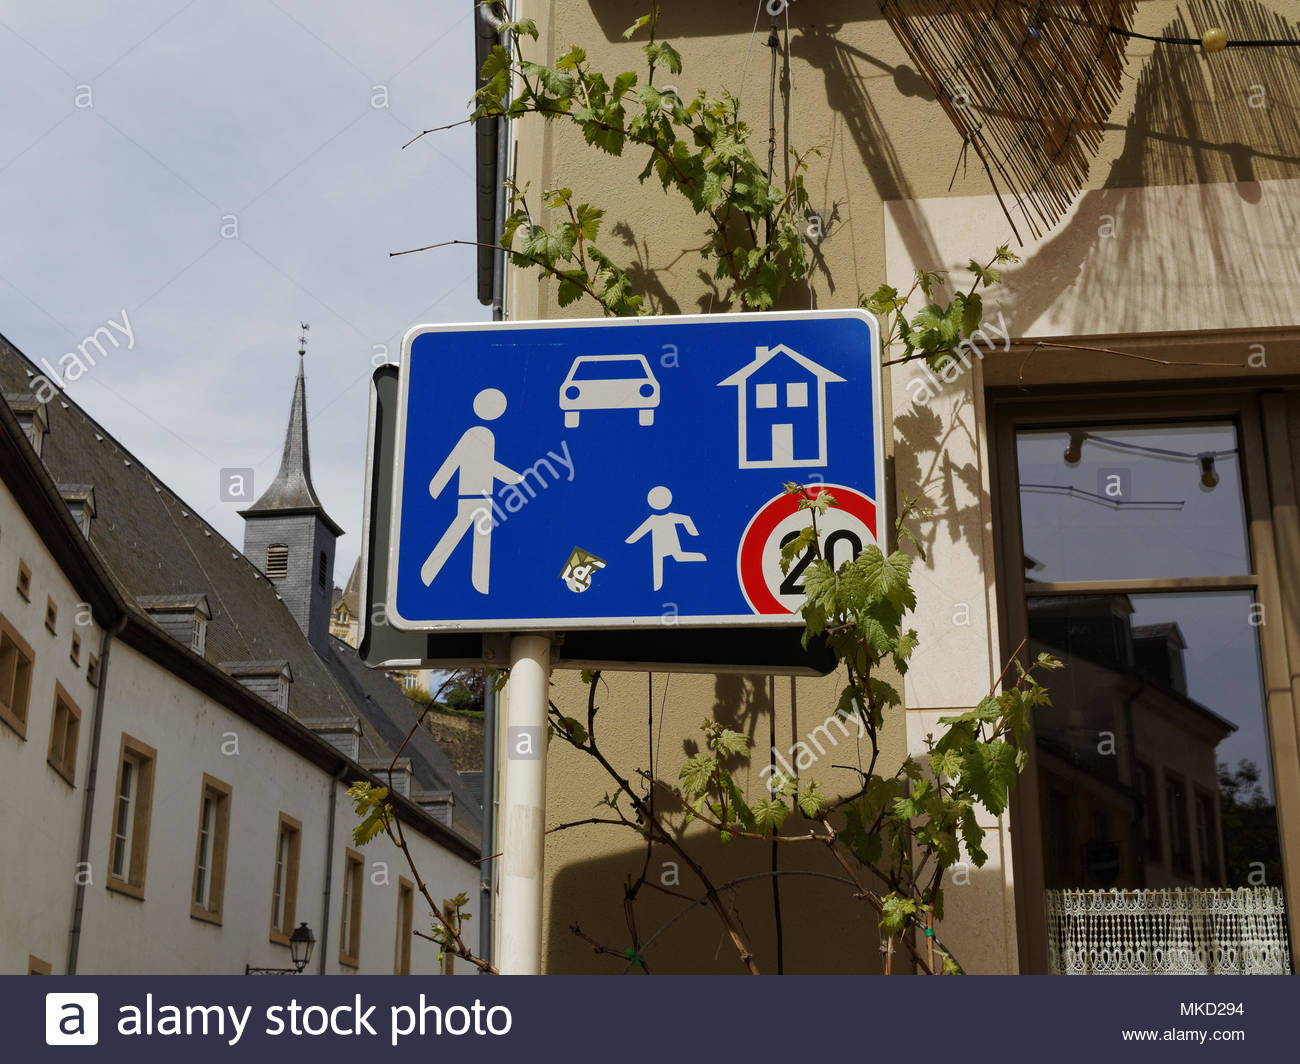 Traffic signage for residential area and children at play, Grund, Luxembourg City - Stock Image